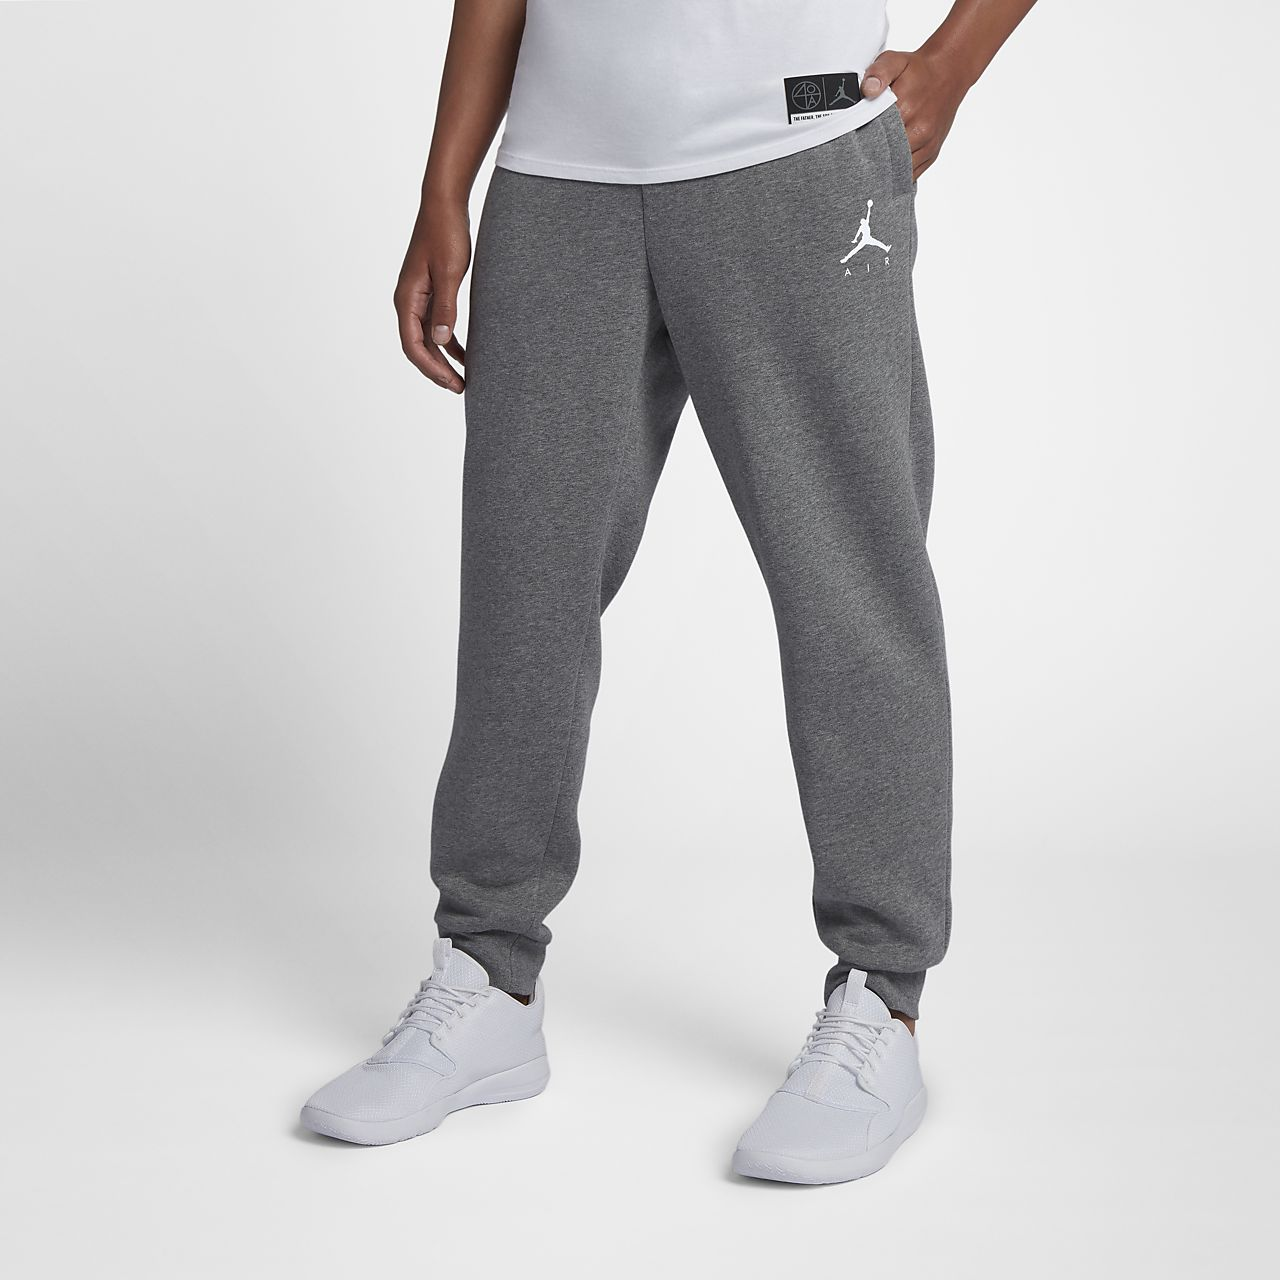 e137fe63d0af Jordan Jumpman Air Men s Fleece Pants. Nike.com